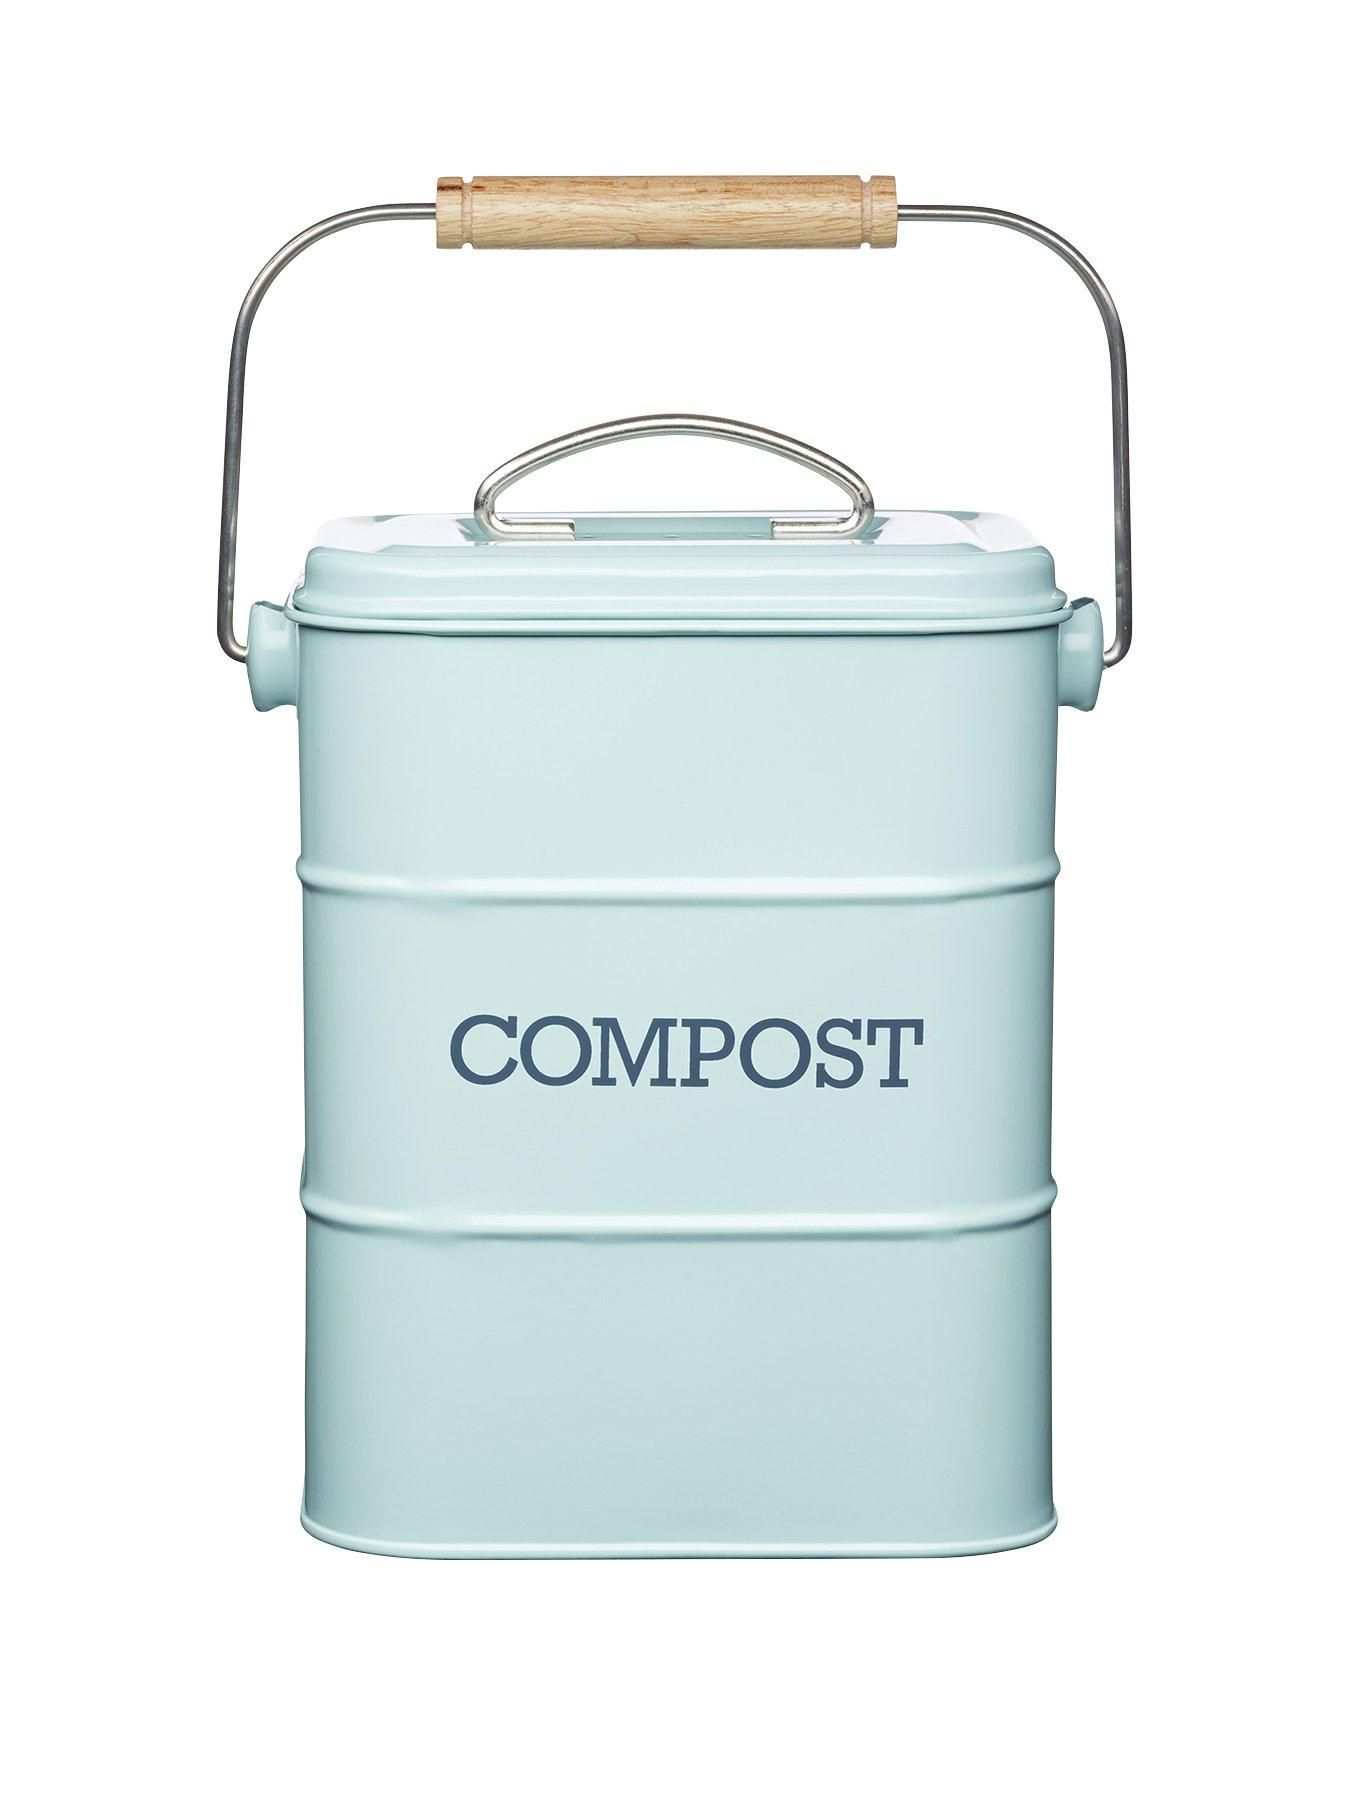 Stylish yet practical, this vintage blue compost bin is perfectly ...